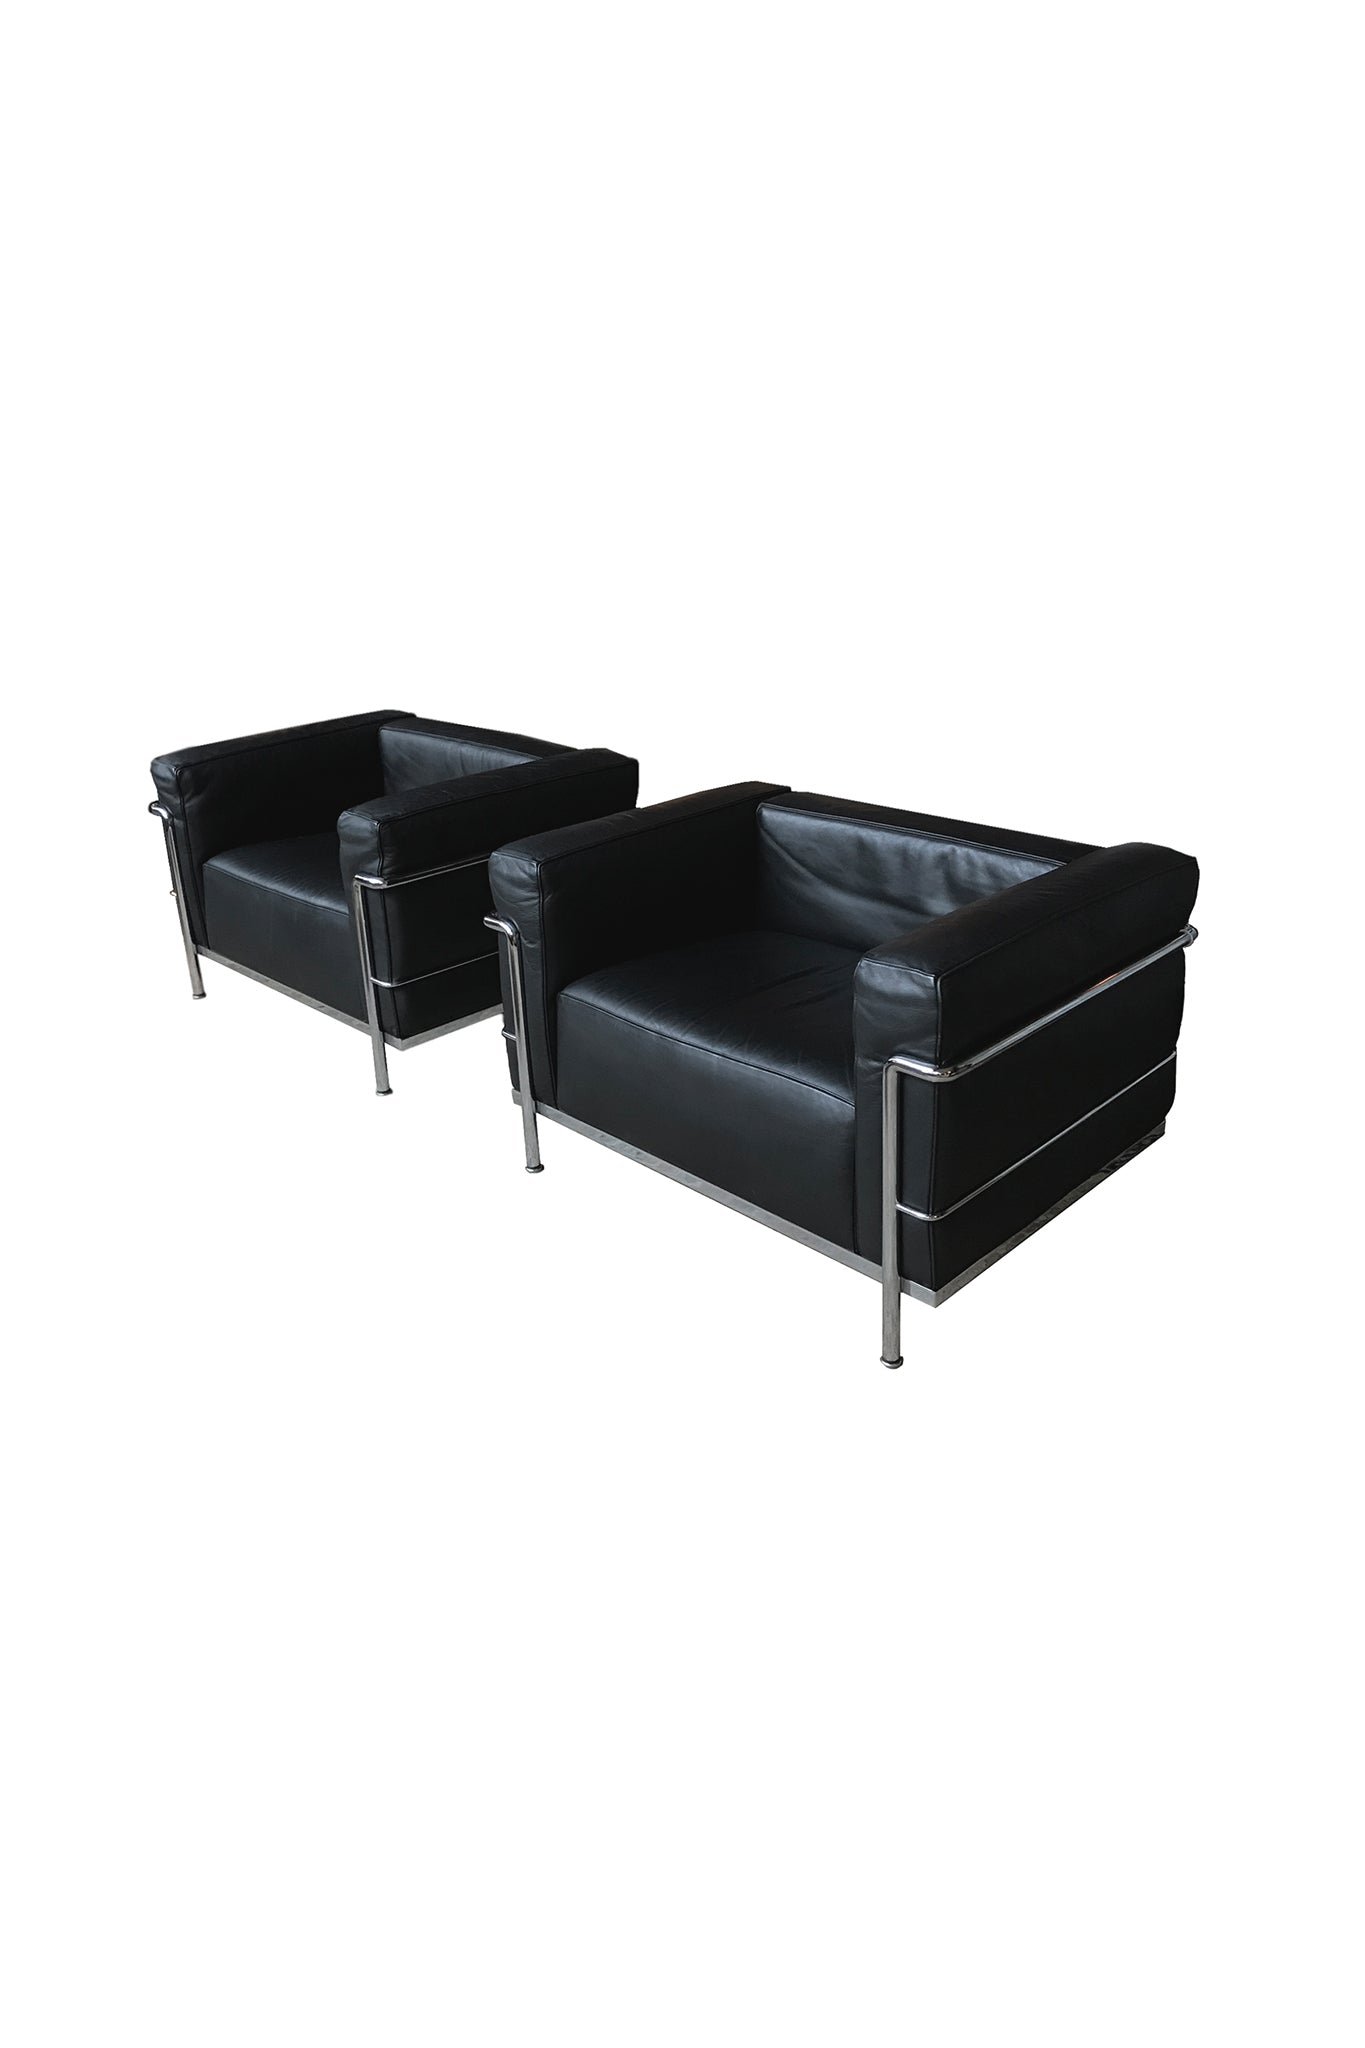 Groovy Seating Tagged Club Chair Cafiero Select Home Interior Design Ideas Gentotryabchikinfo